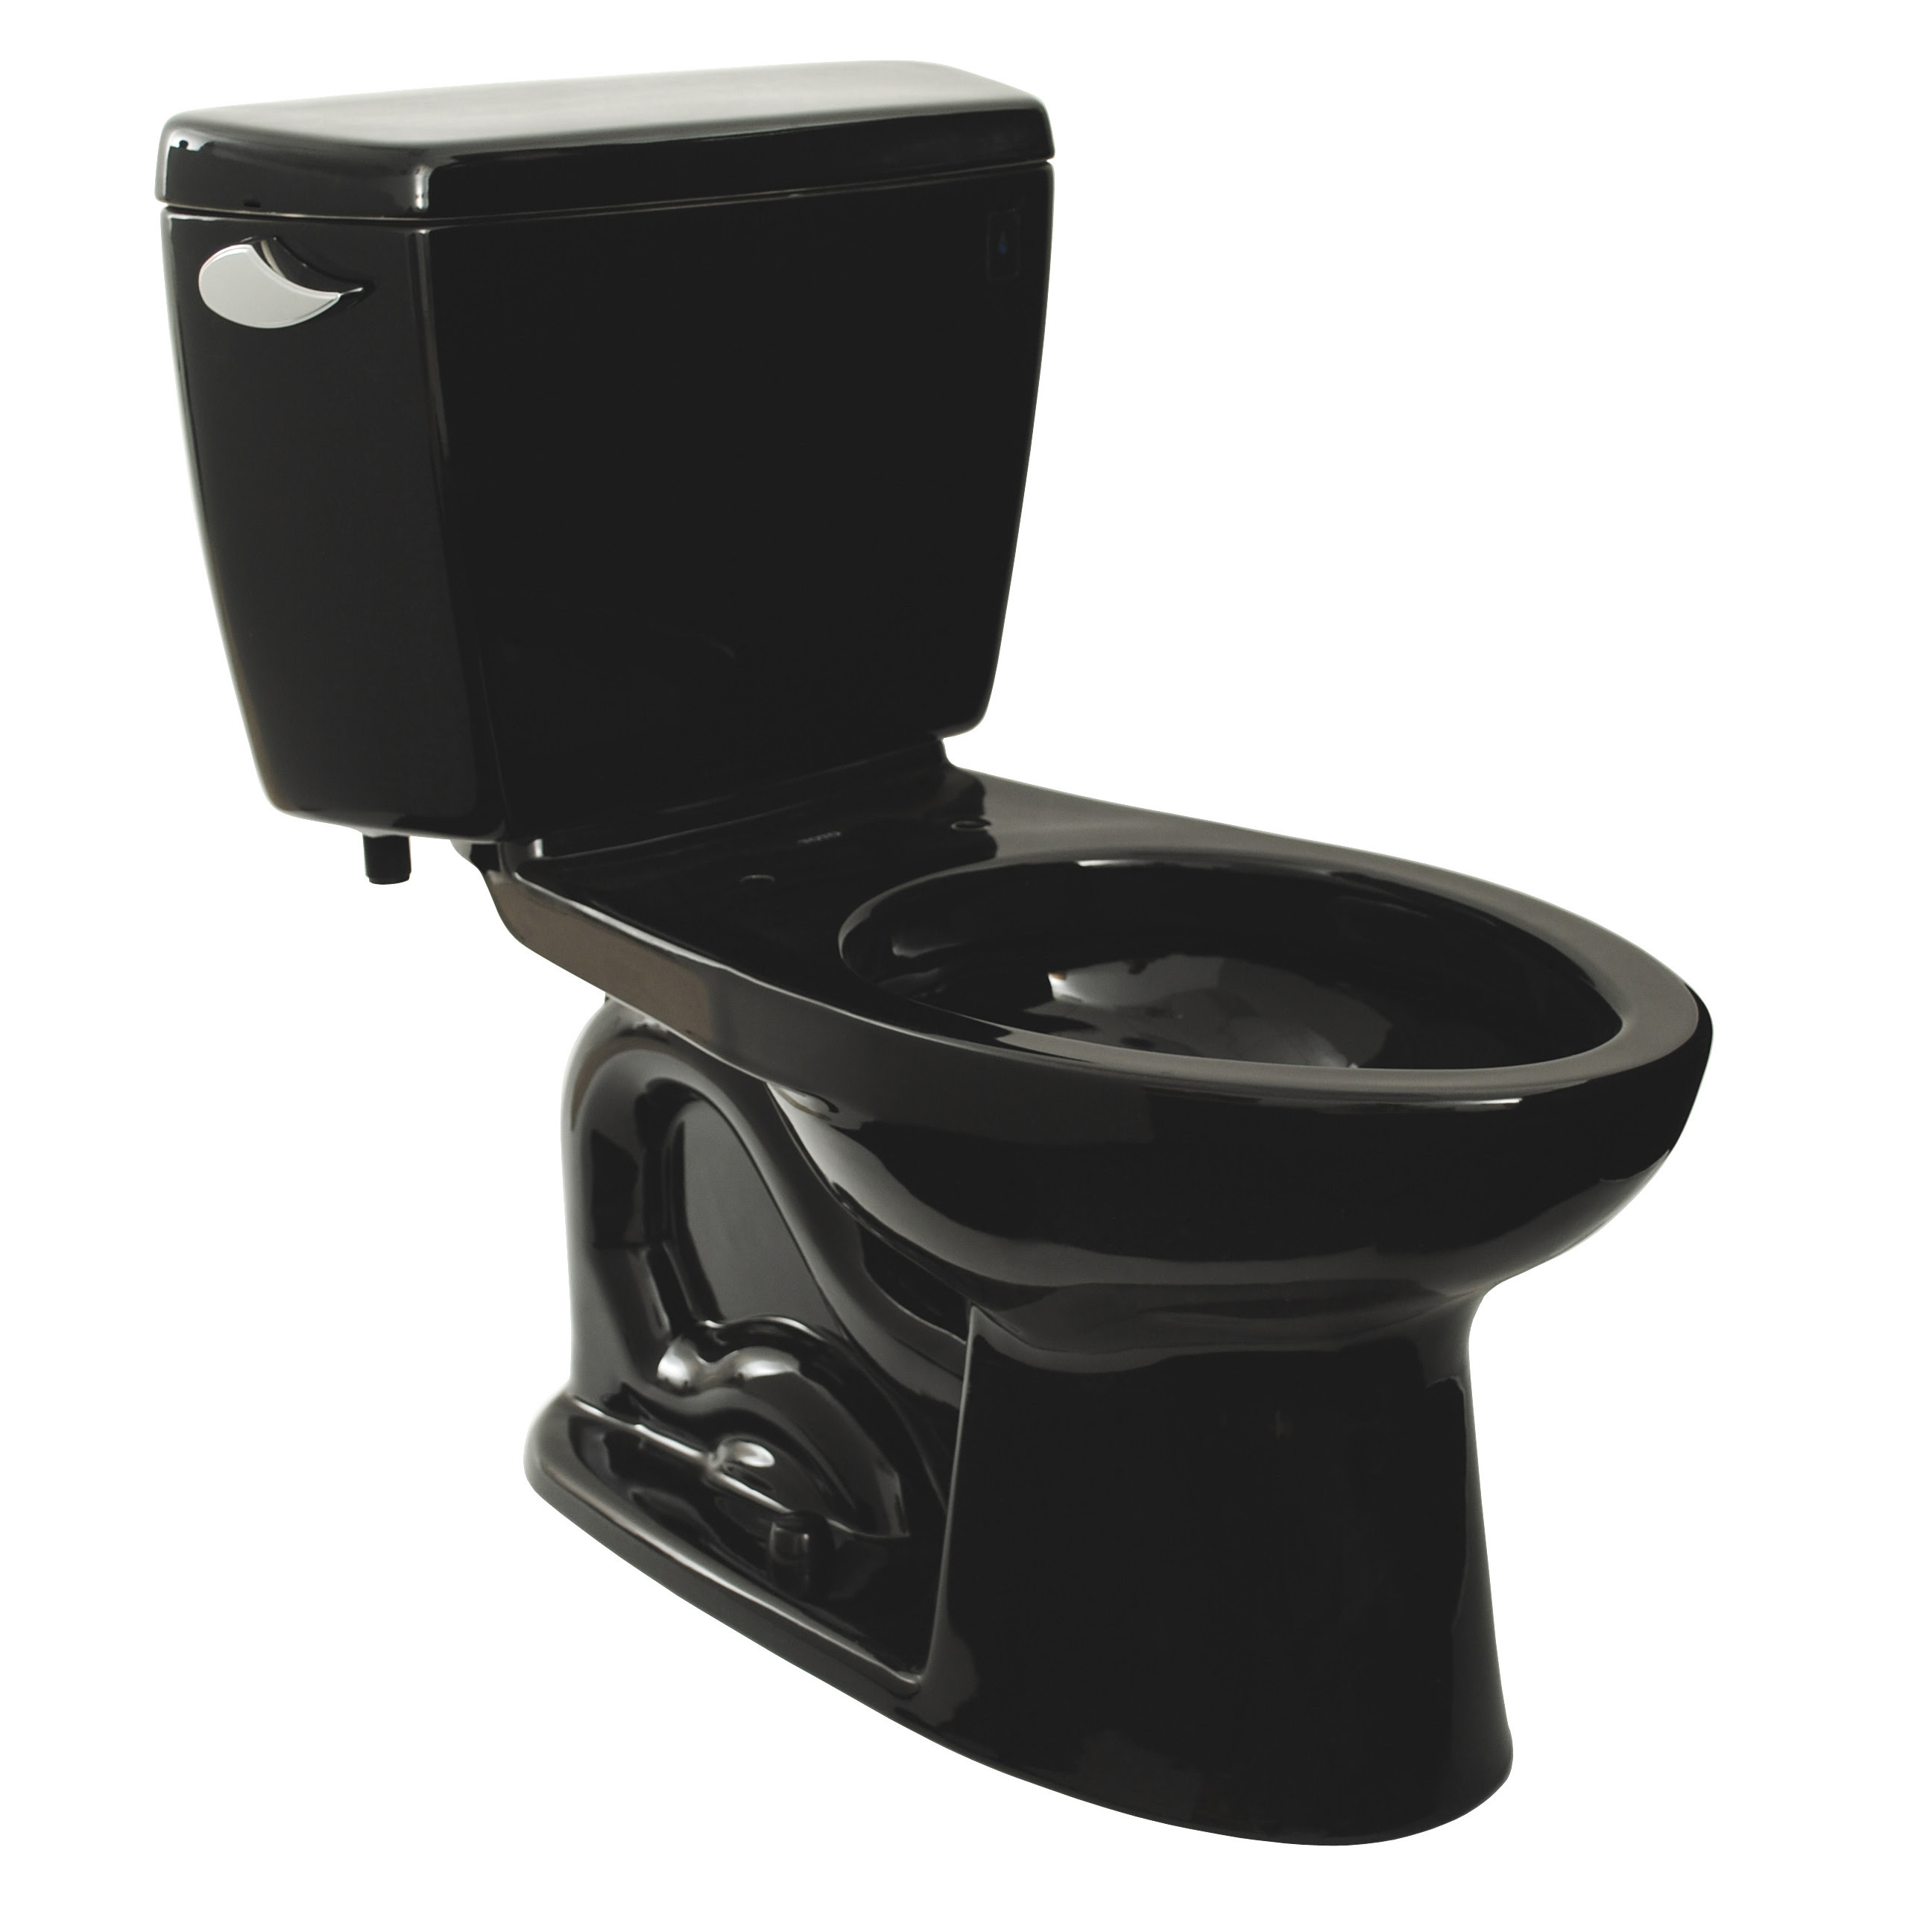 Bath & Shower Have A Moder Toilet With Toto Toilet